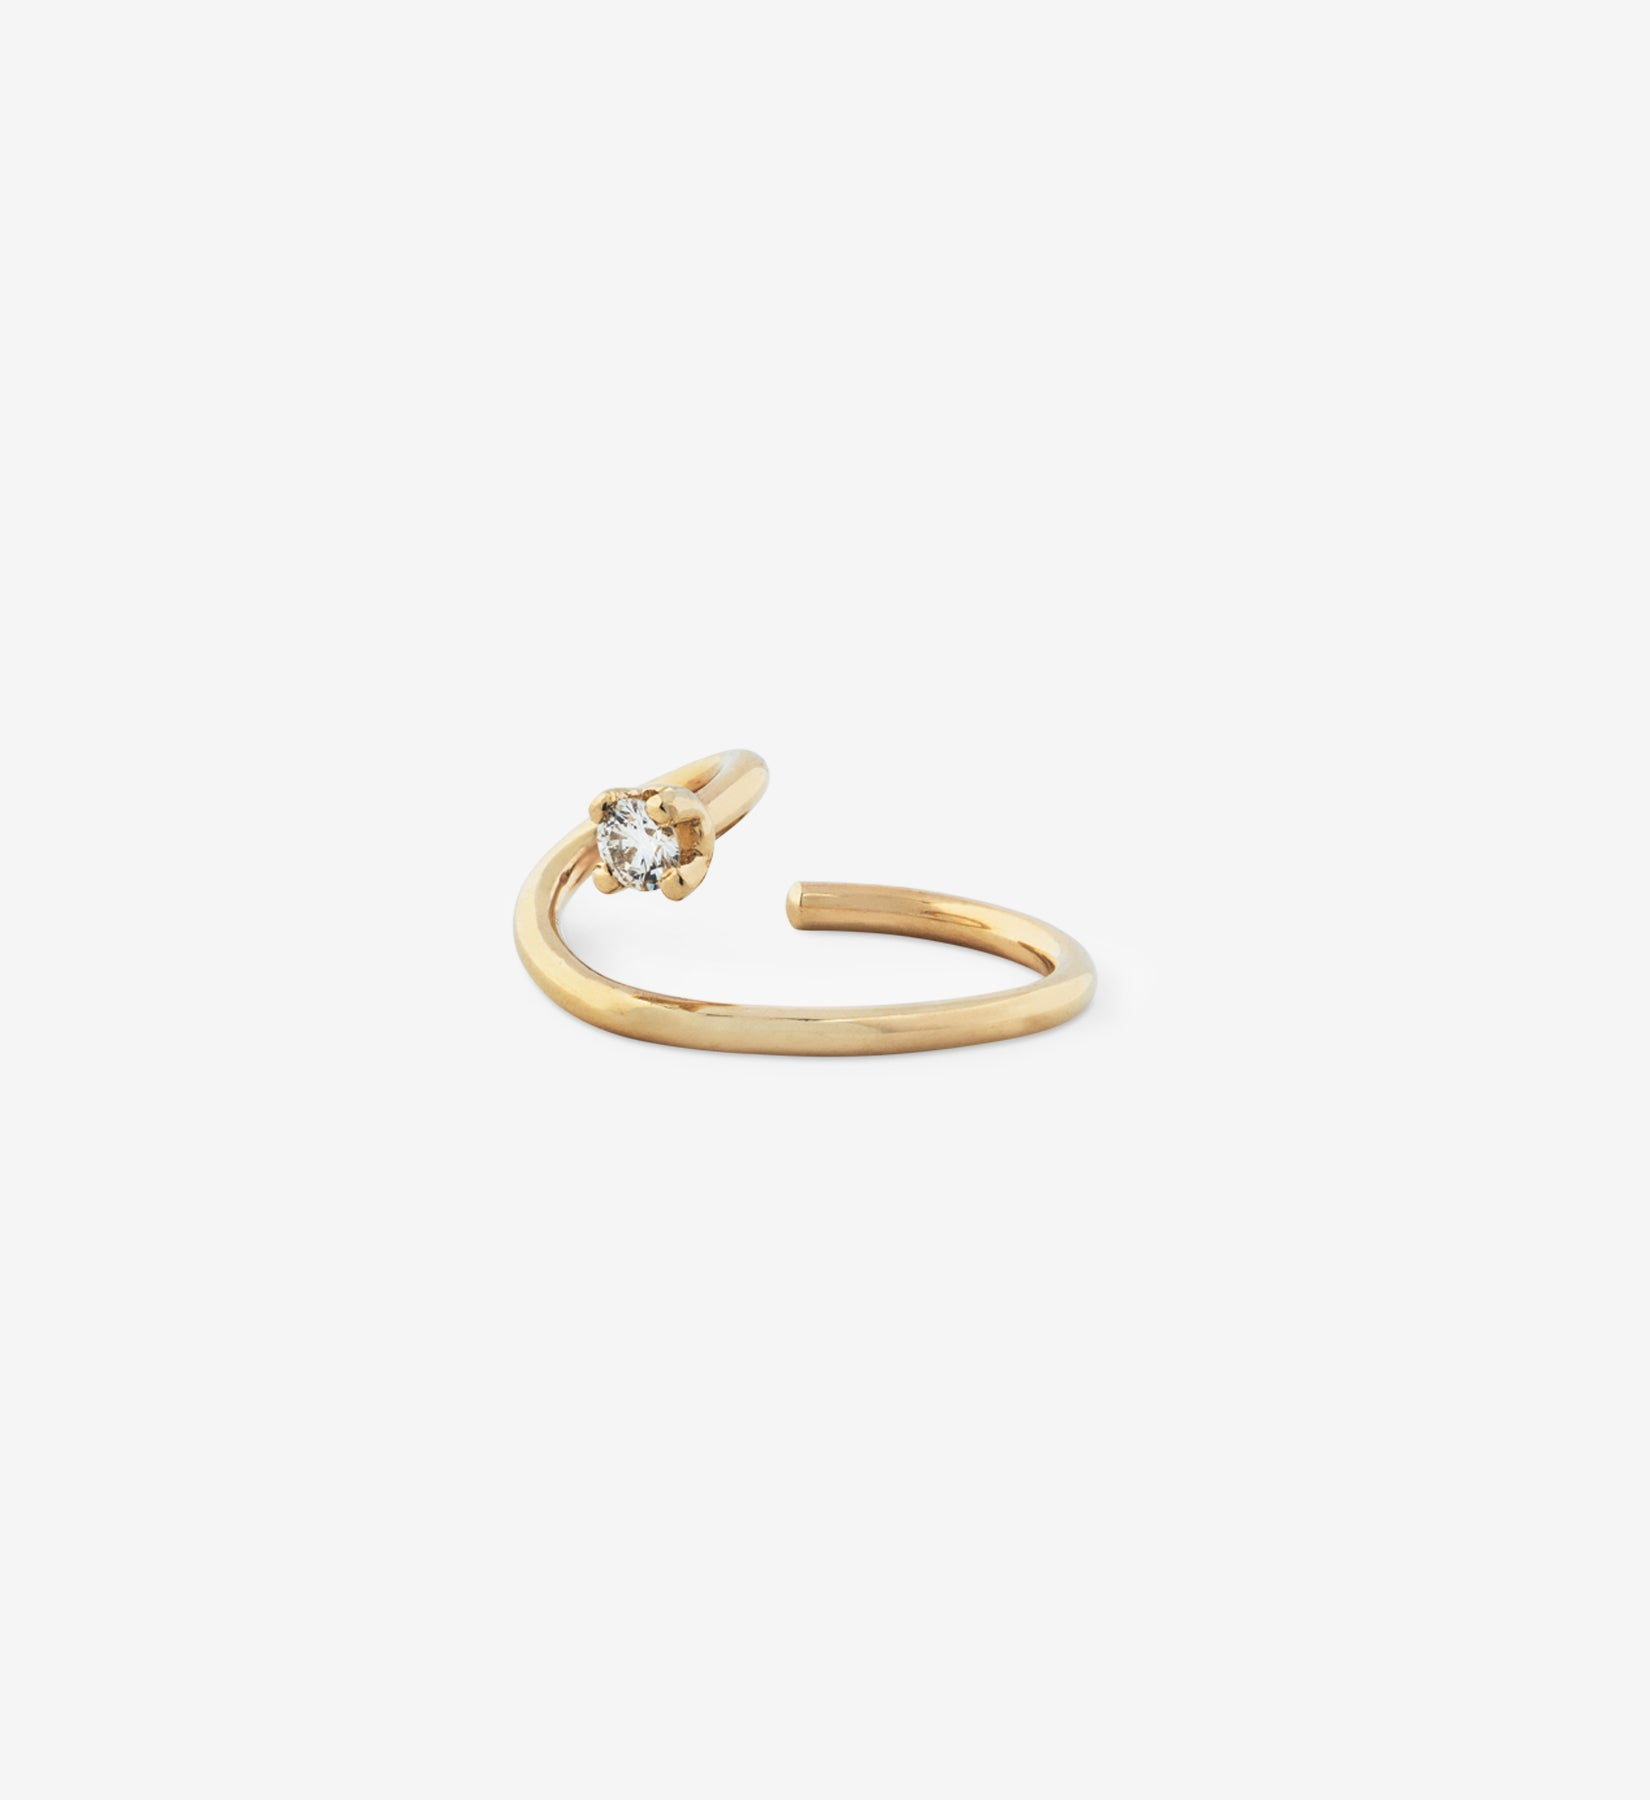 OUVERTURE, Fine jewelry, 14K gold, diamonds, golden ring, diamond ring, golden earring, diamond earring. Handcrafted jewelry. Designed in Berlin.  Demifine. Earparty. Earcuff. Gold Earcuff. Floating diamond earcuff.